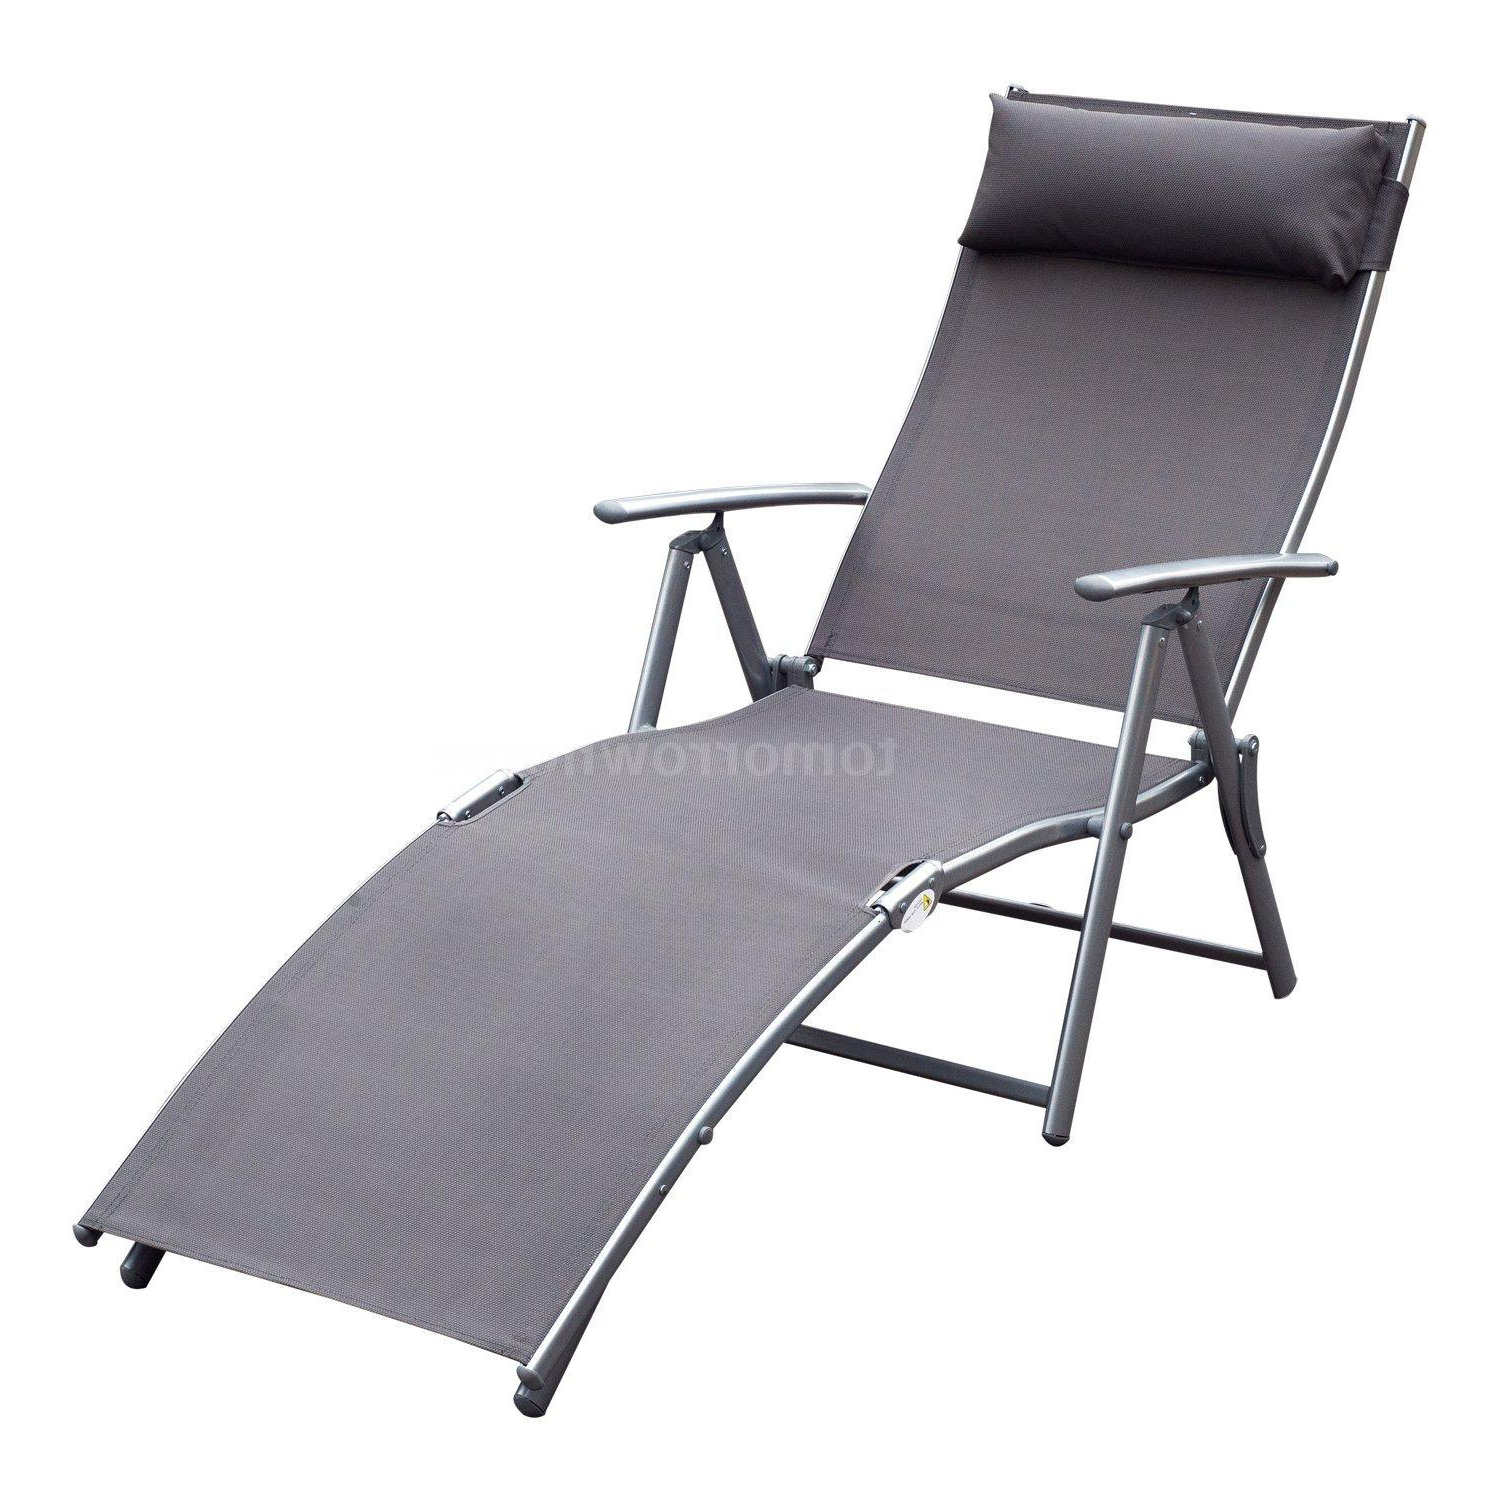 Latest Steel Sling Fabric Outdoor Folding Chaise Lounges Inside Details About Steel Sling Fabric Outdoor Folding Chaise Lounge Chair Recliner – Grey K5c (View 12 of 25)